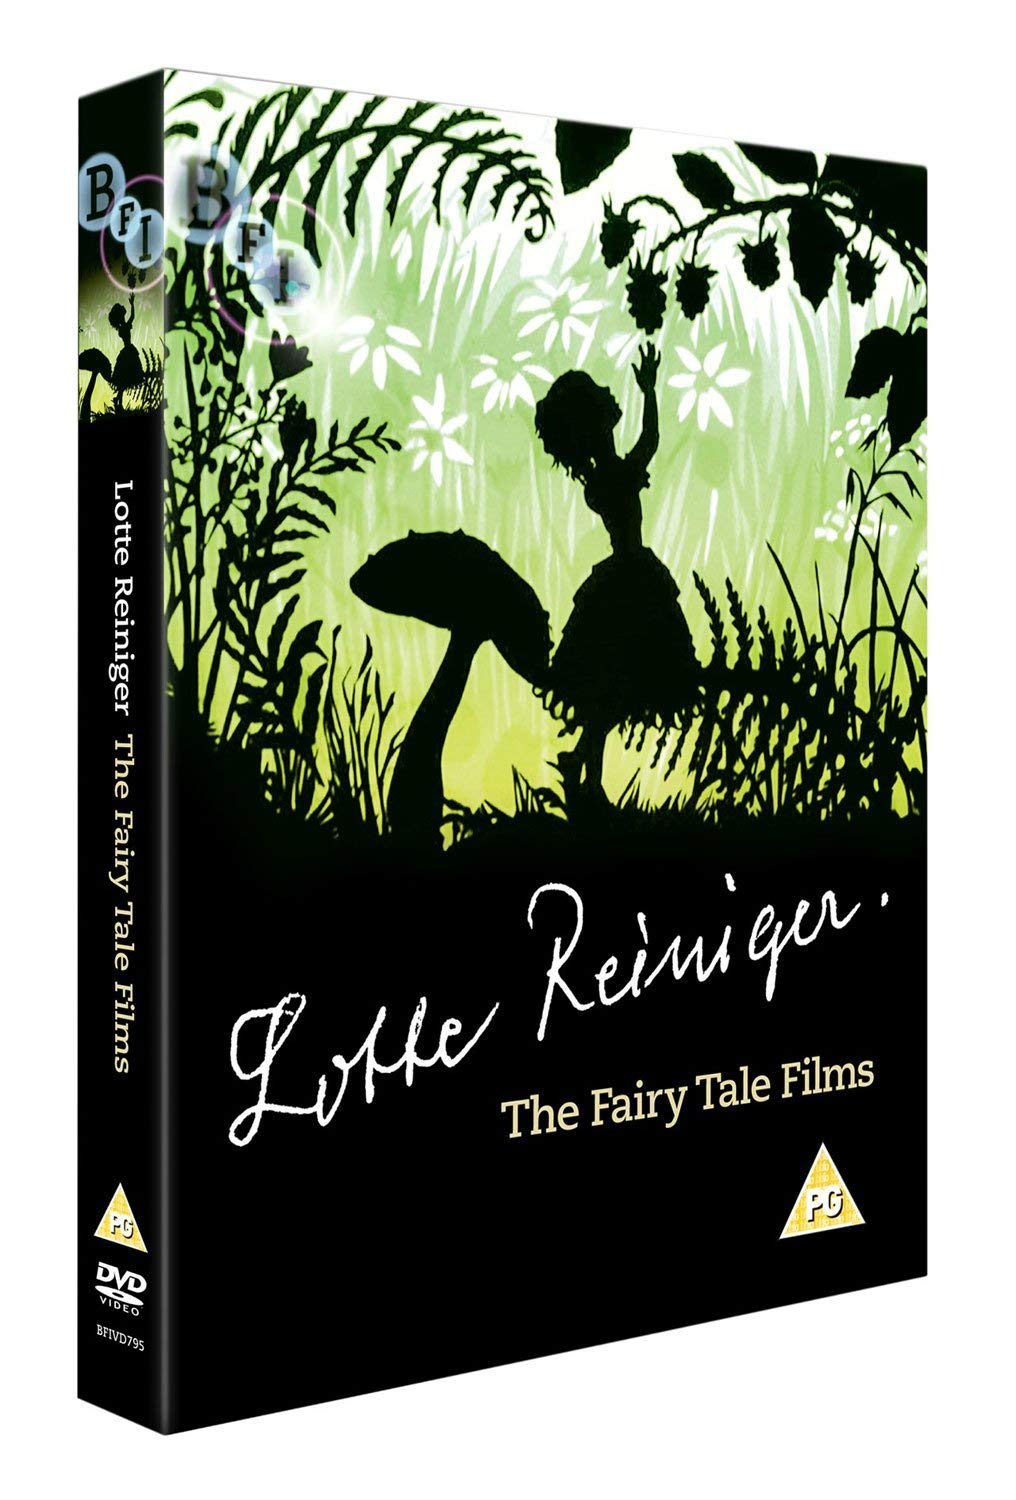 Lotte Reiniger - The Fairy Tale Films DVD by Lotte Reiniger ...